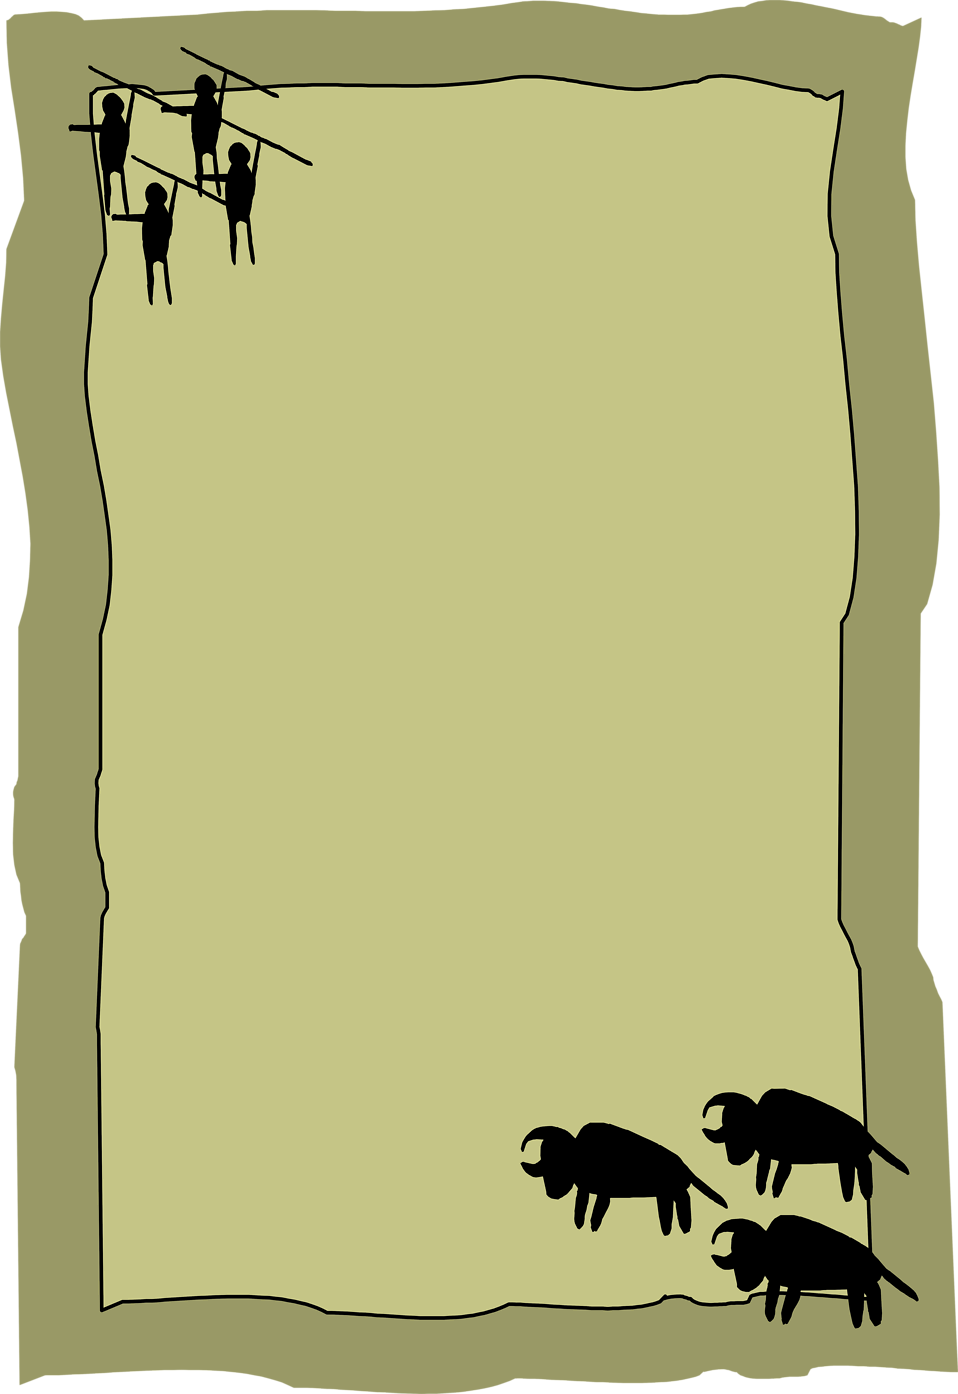 Illustration of a blank frame border with prehistoric cave drawings : Free Stock Photo